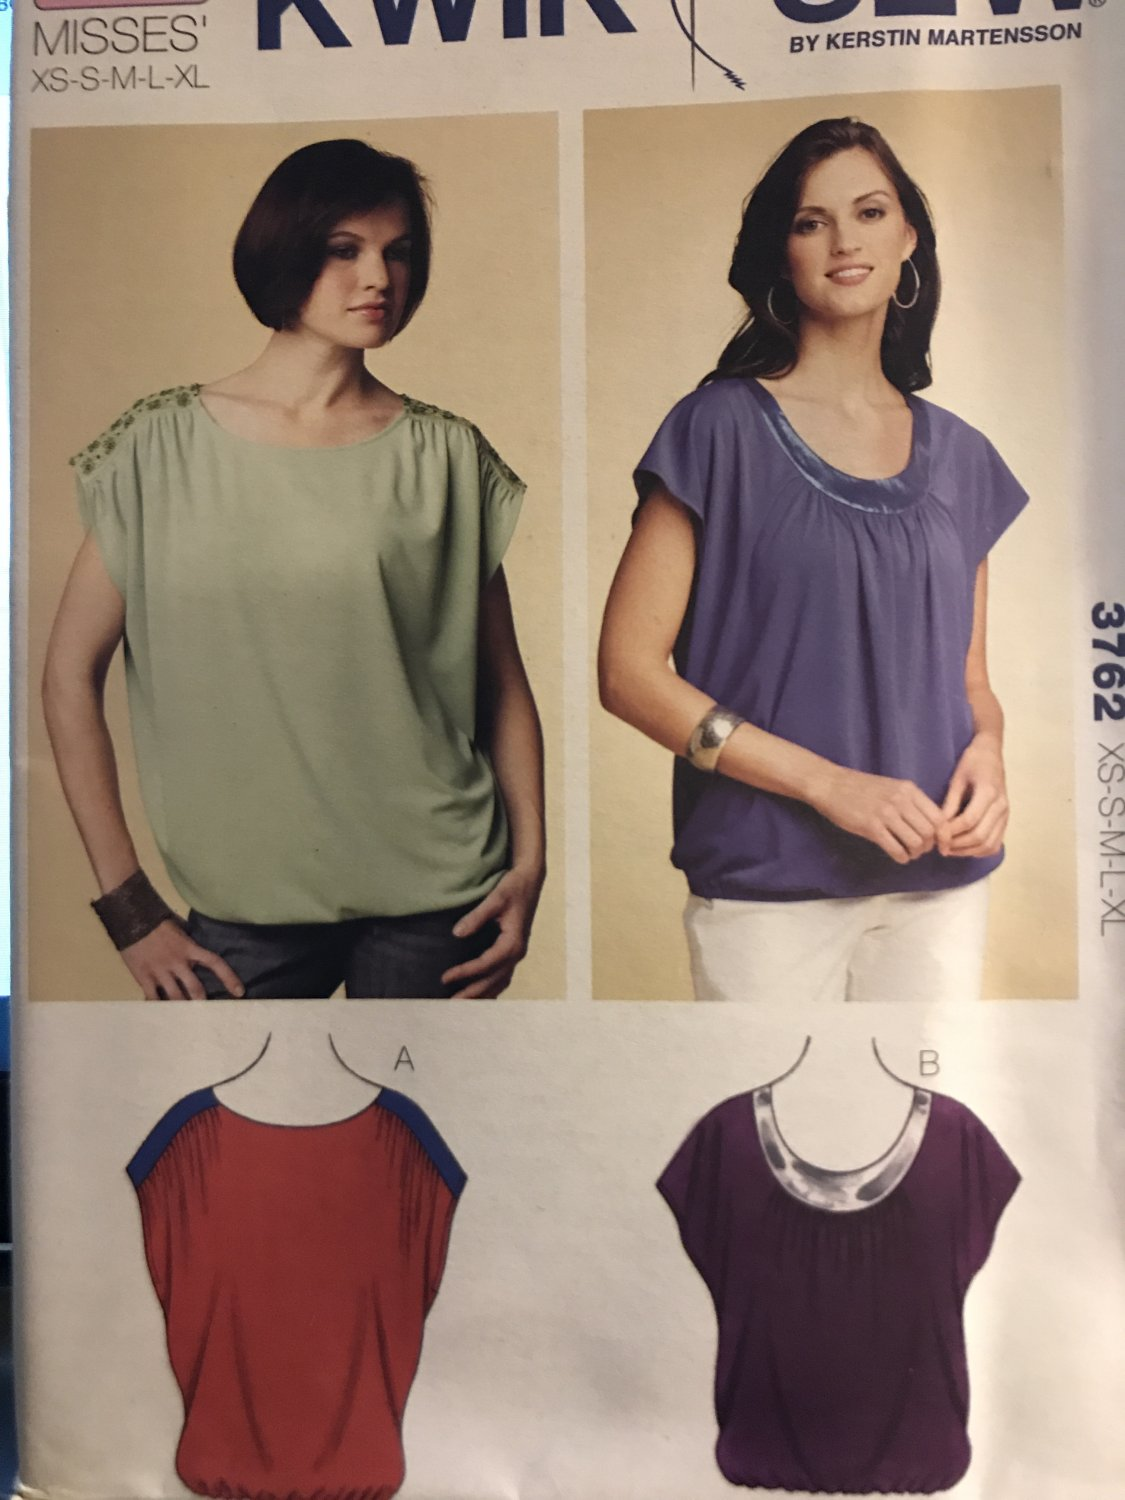 Kwik Sew 3762 Misses' Top Easy to sew Top Sewing Pattern Size XS to XL